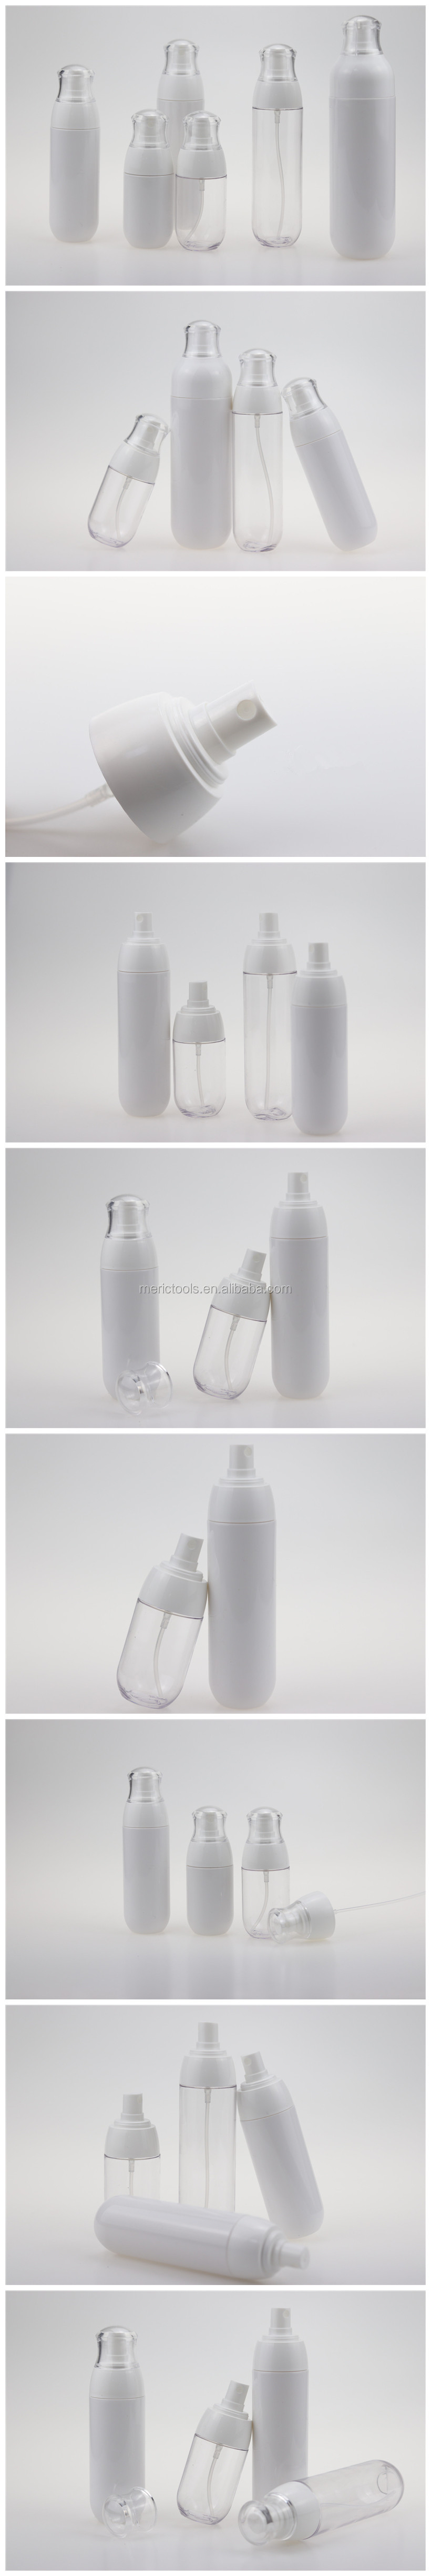 2019 New style hot sale PETG 2 types plastic spray bottle/perfume/cosmetic water plastic bottle and Emulsion bottle